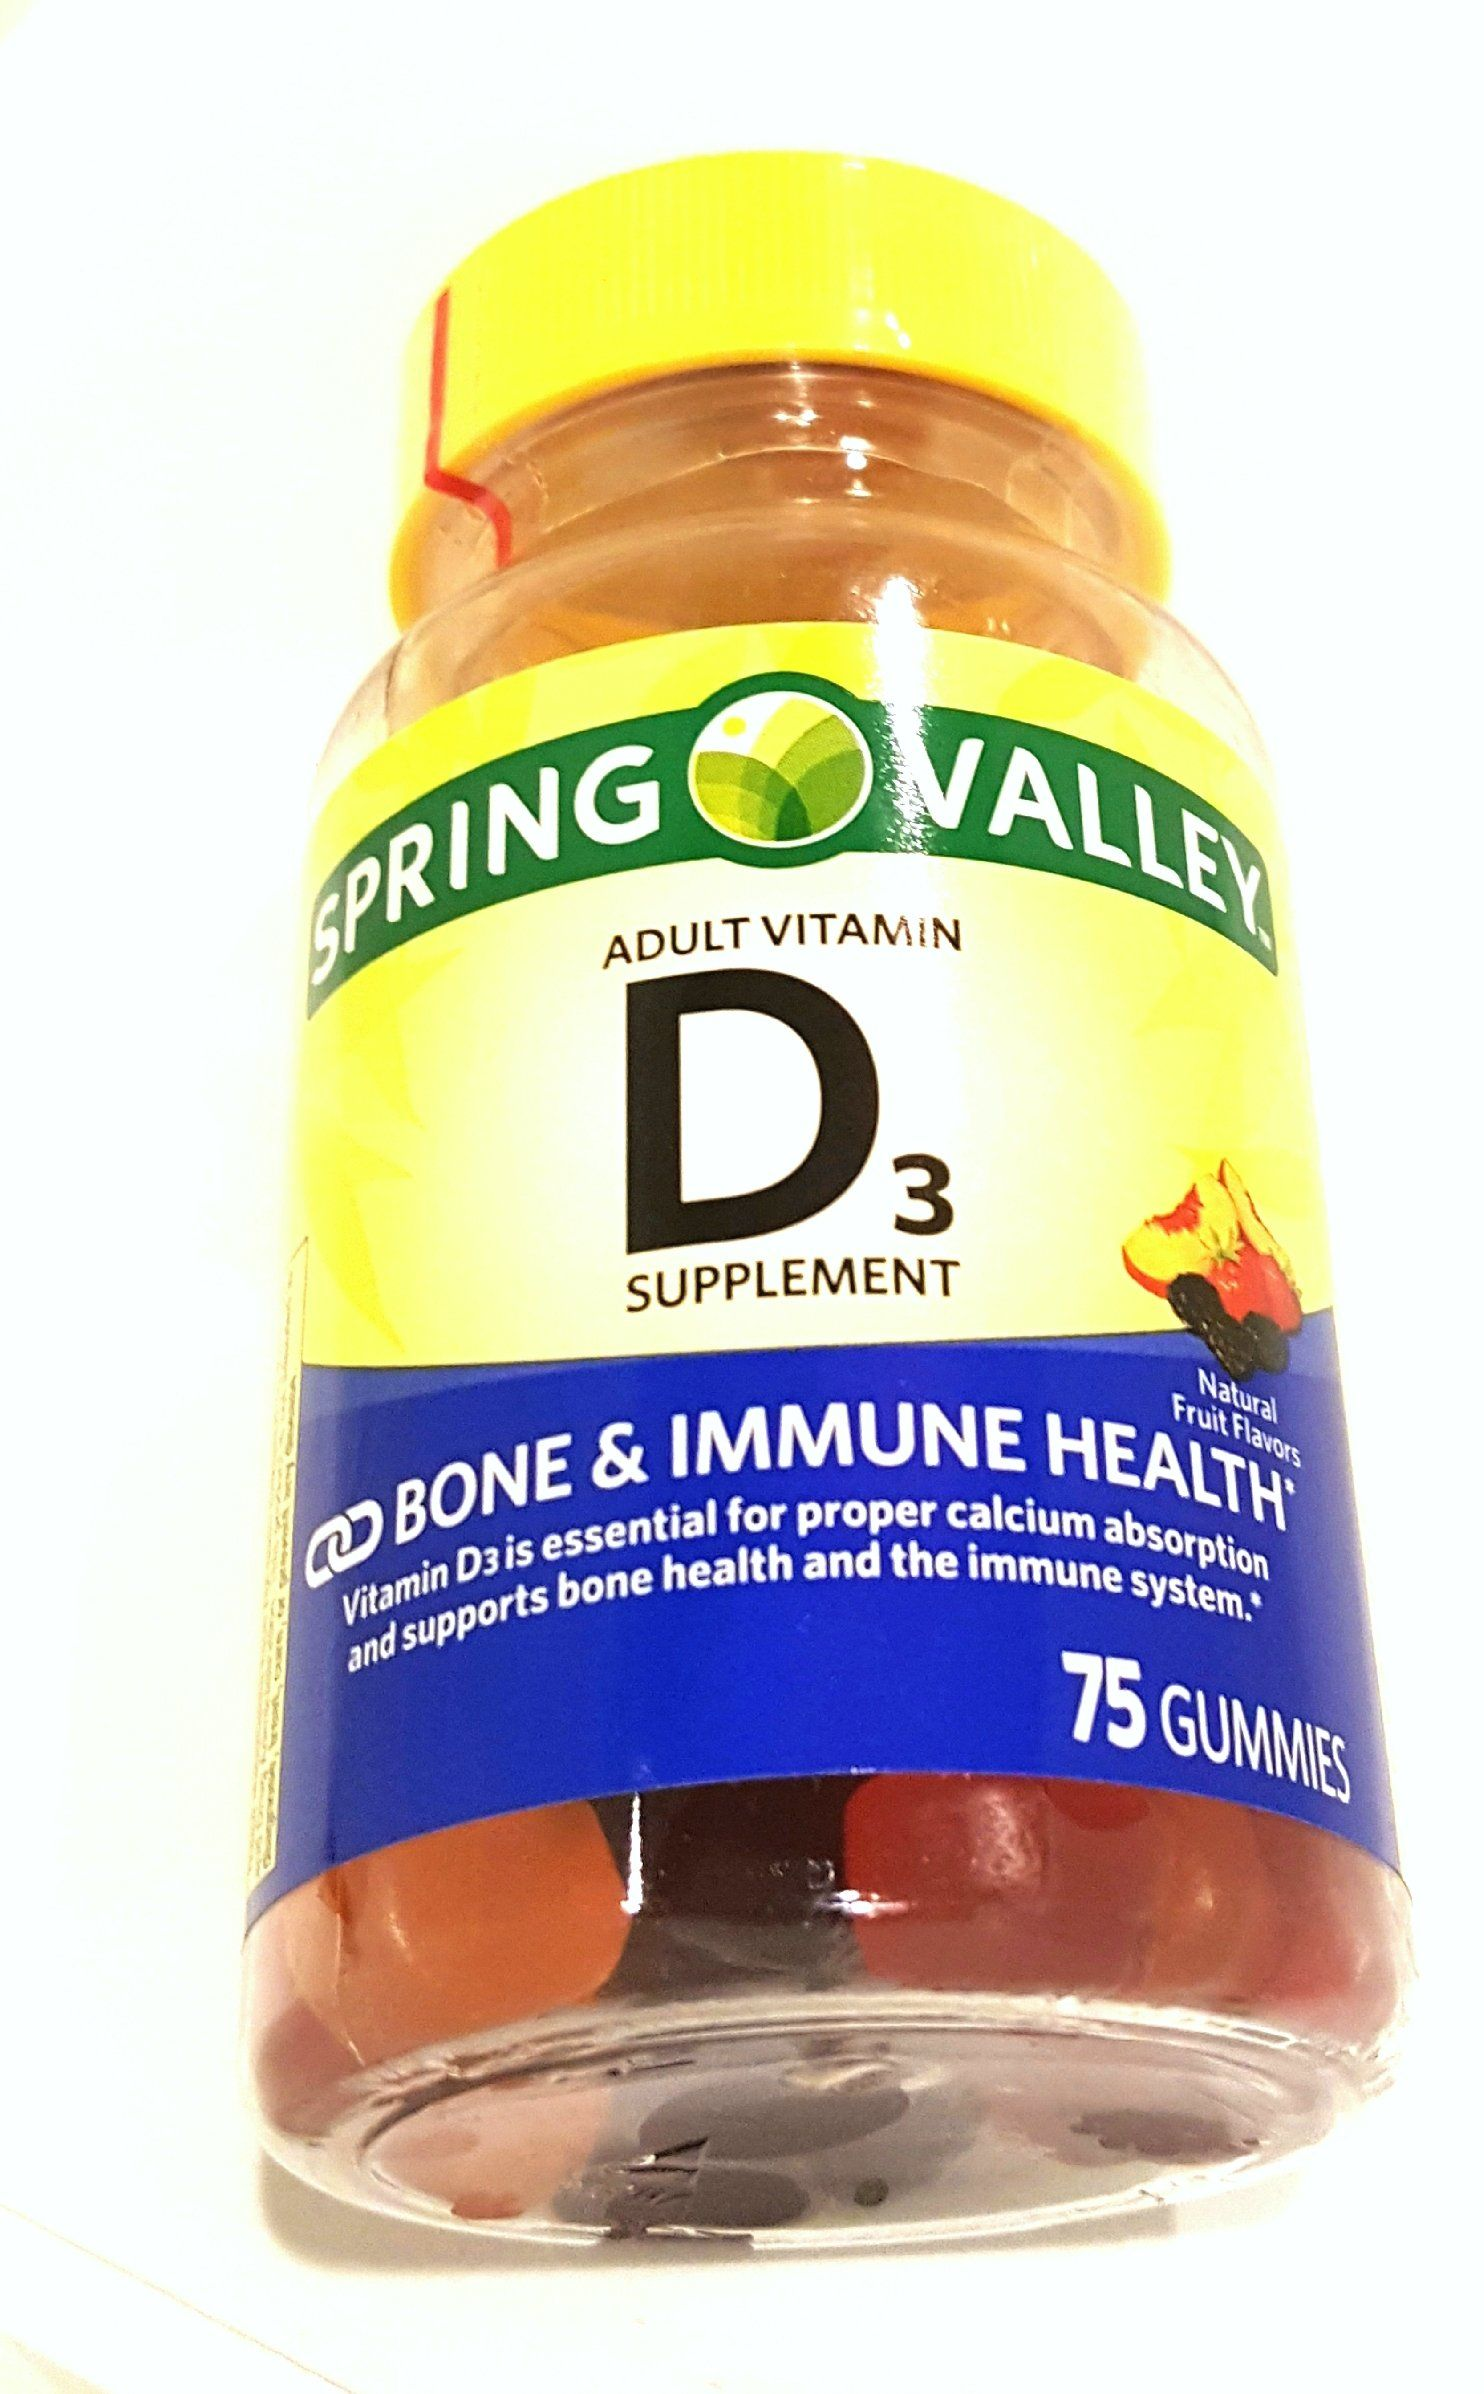 Spring Valley Vitamin D3 1000 IU Peach Blackberry